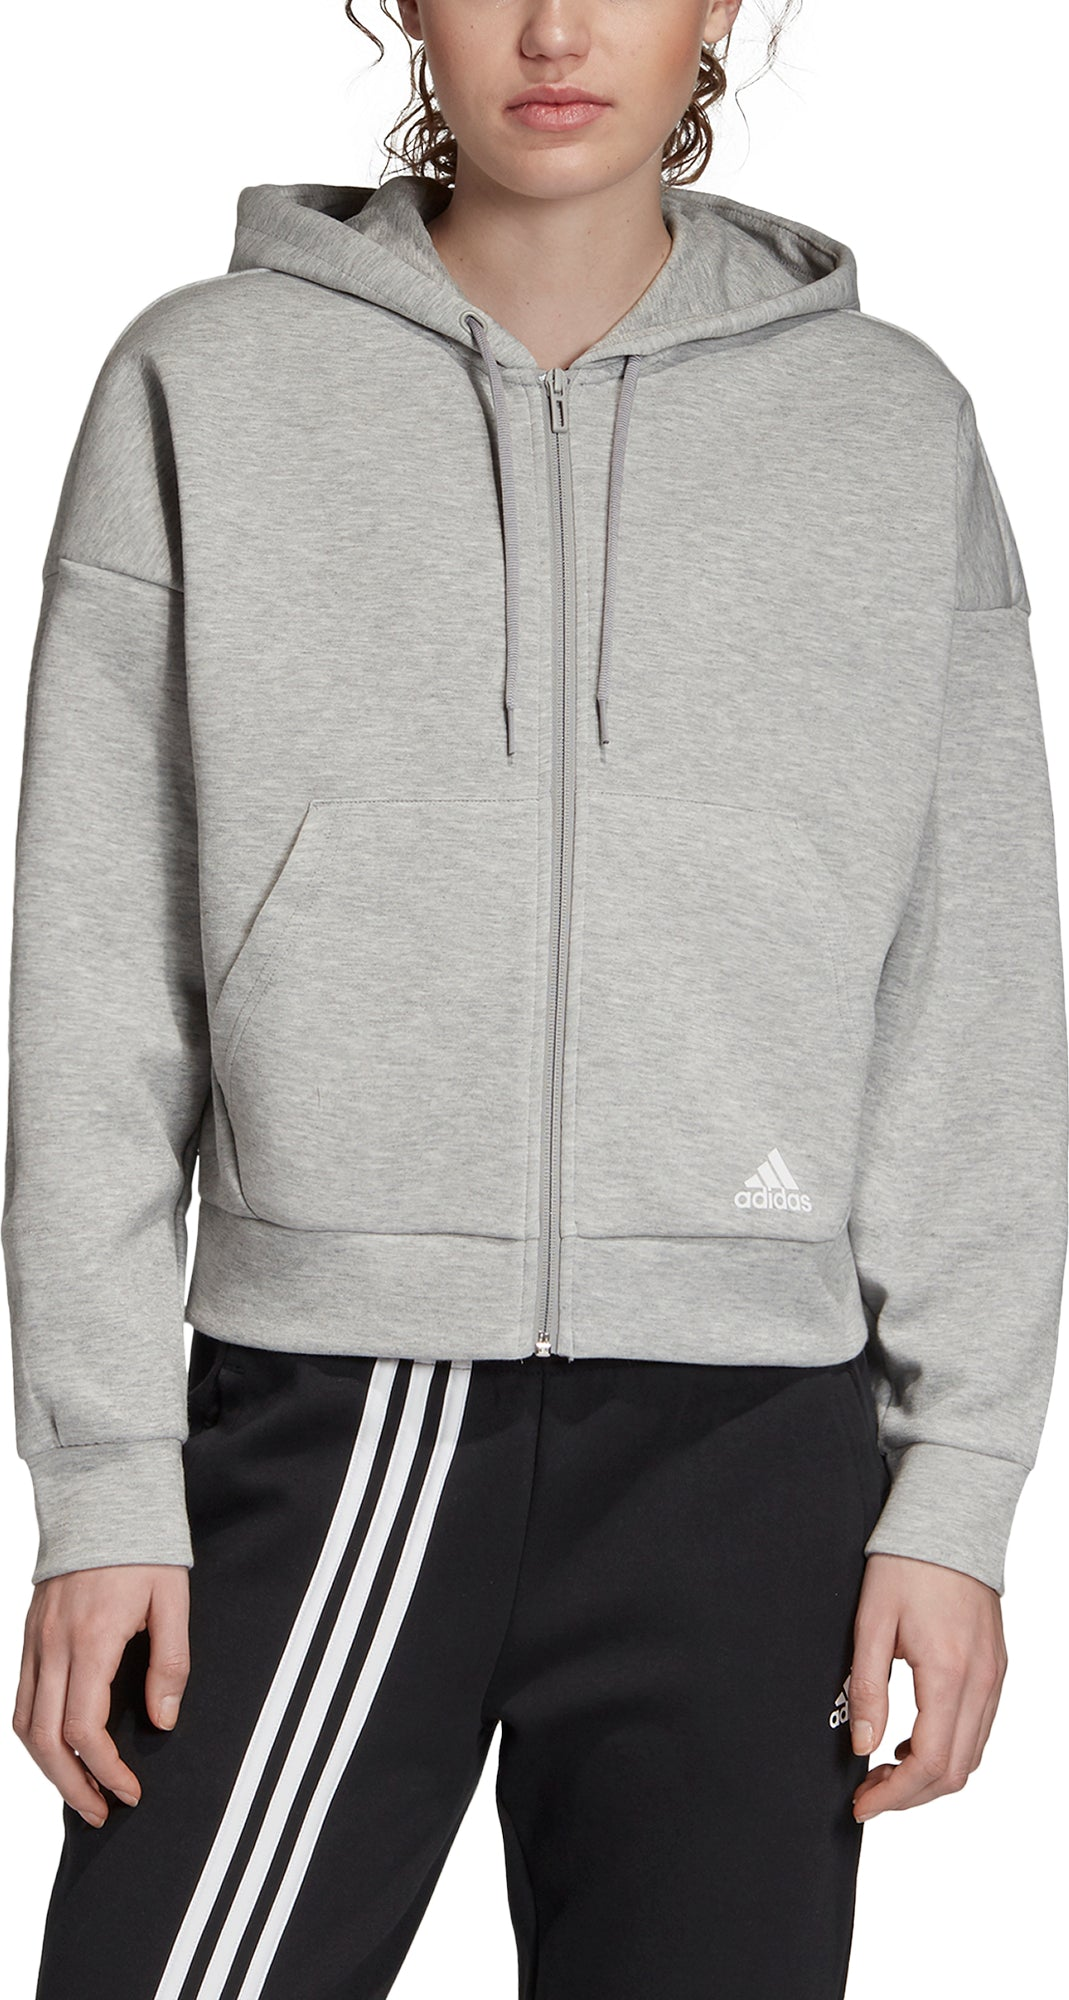 good usa cheap sale online here Adidas Must Haves 3-Stripes Hoodie - Women's